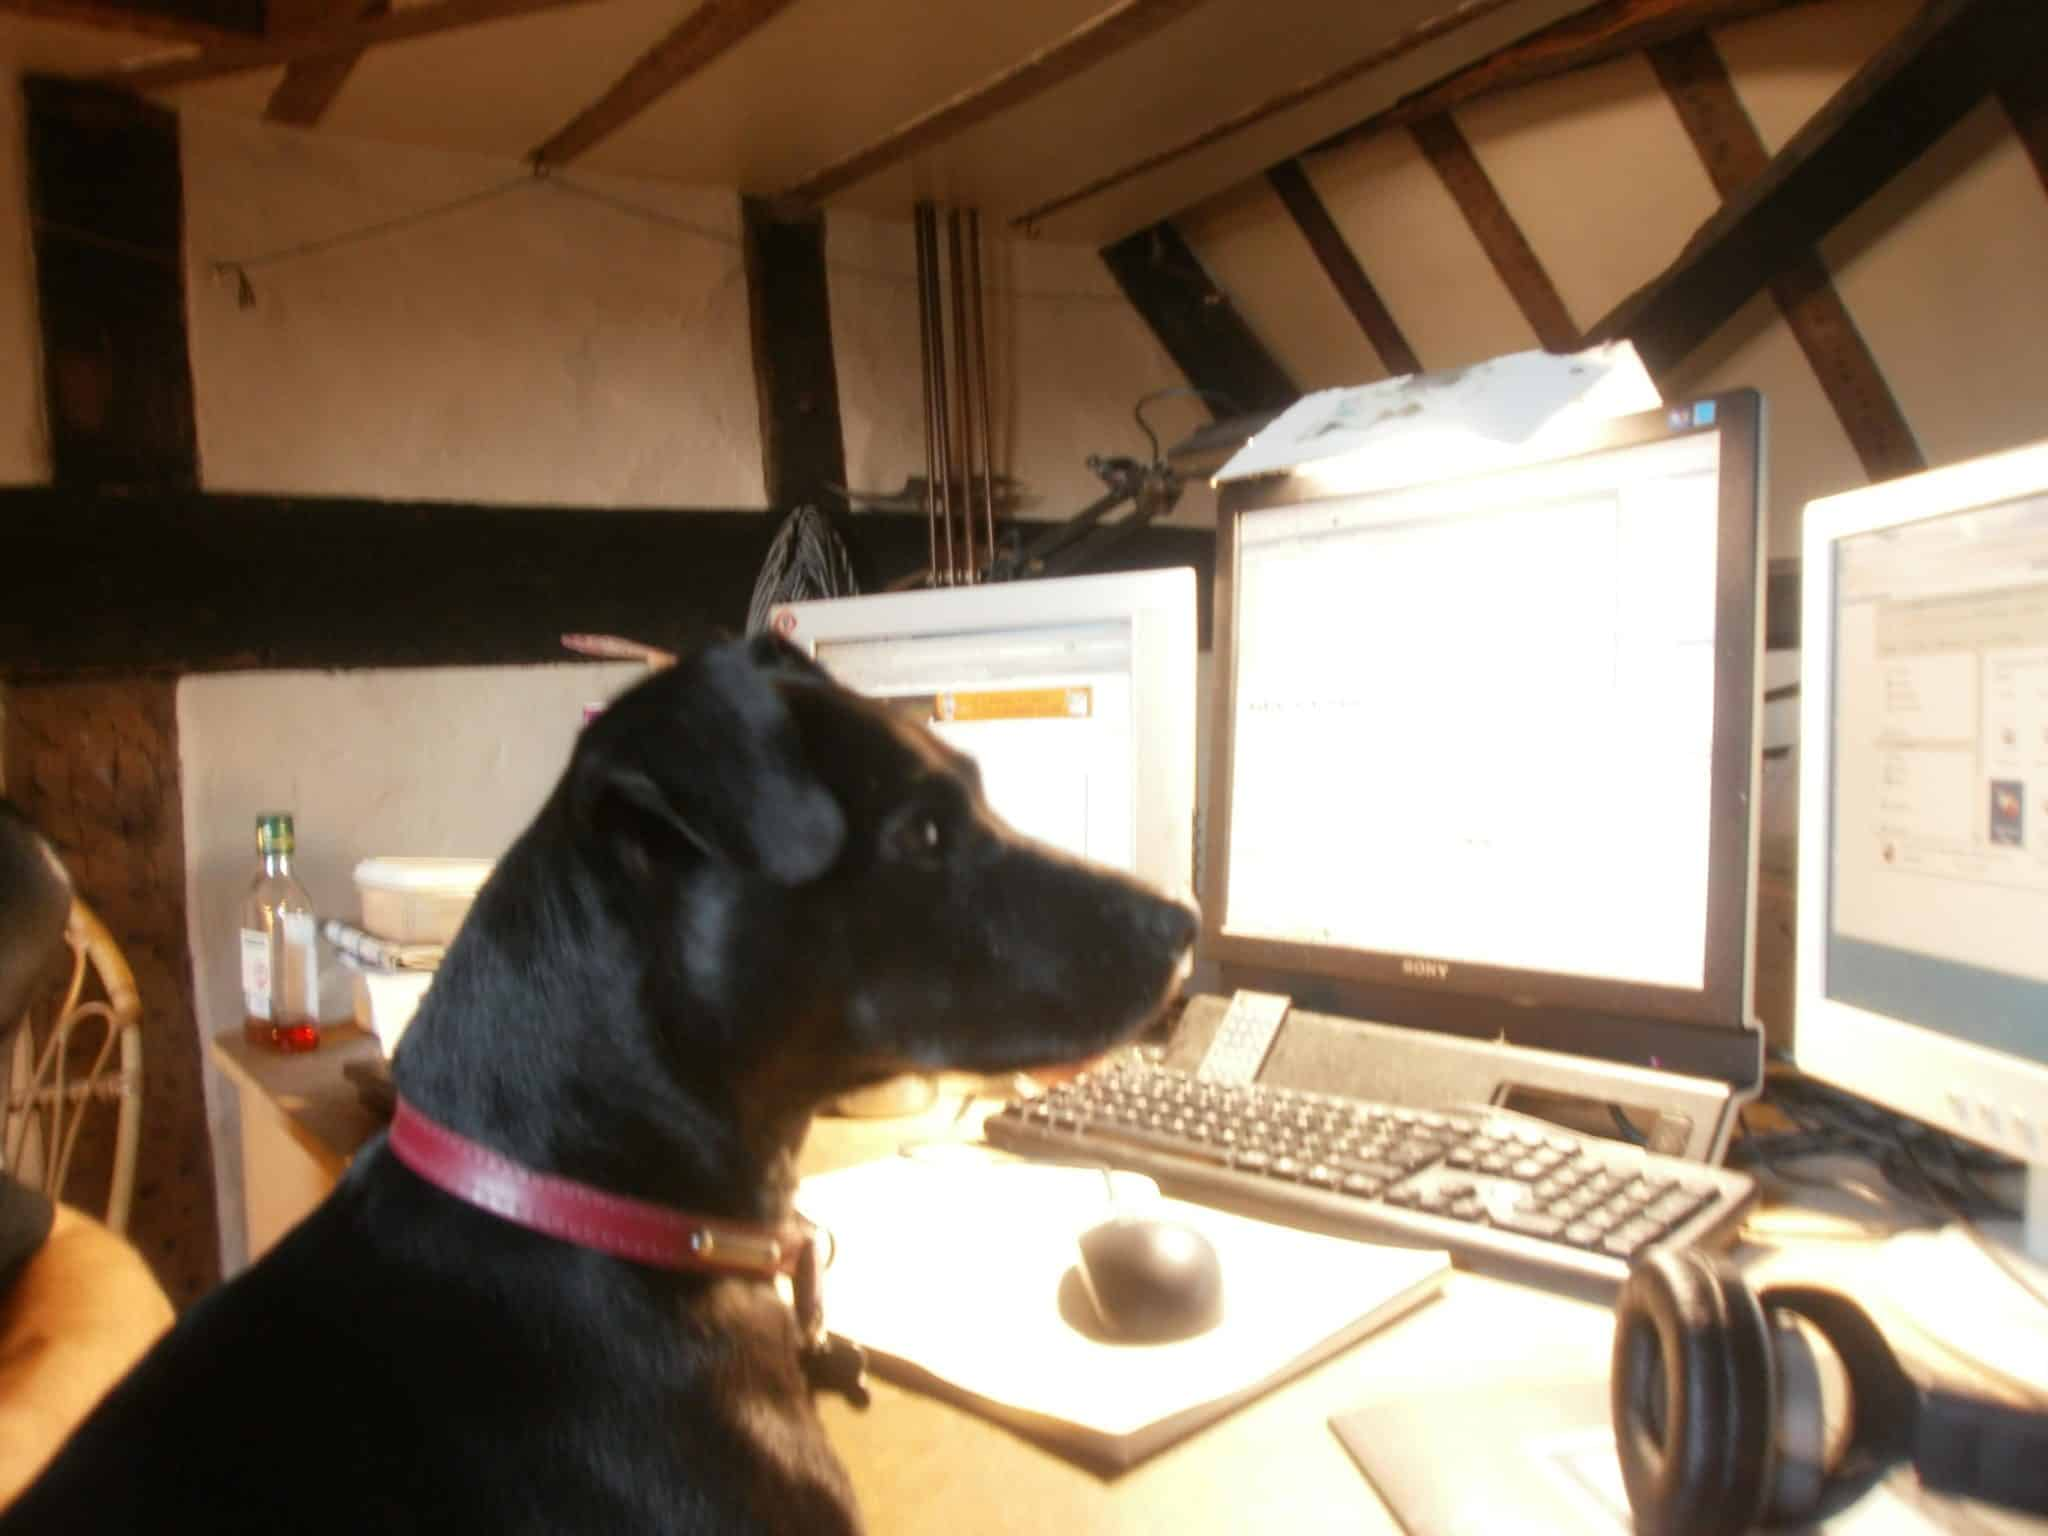 Picture of a dog online managing its business social media accounts.